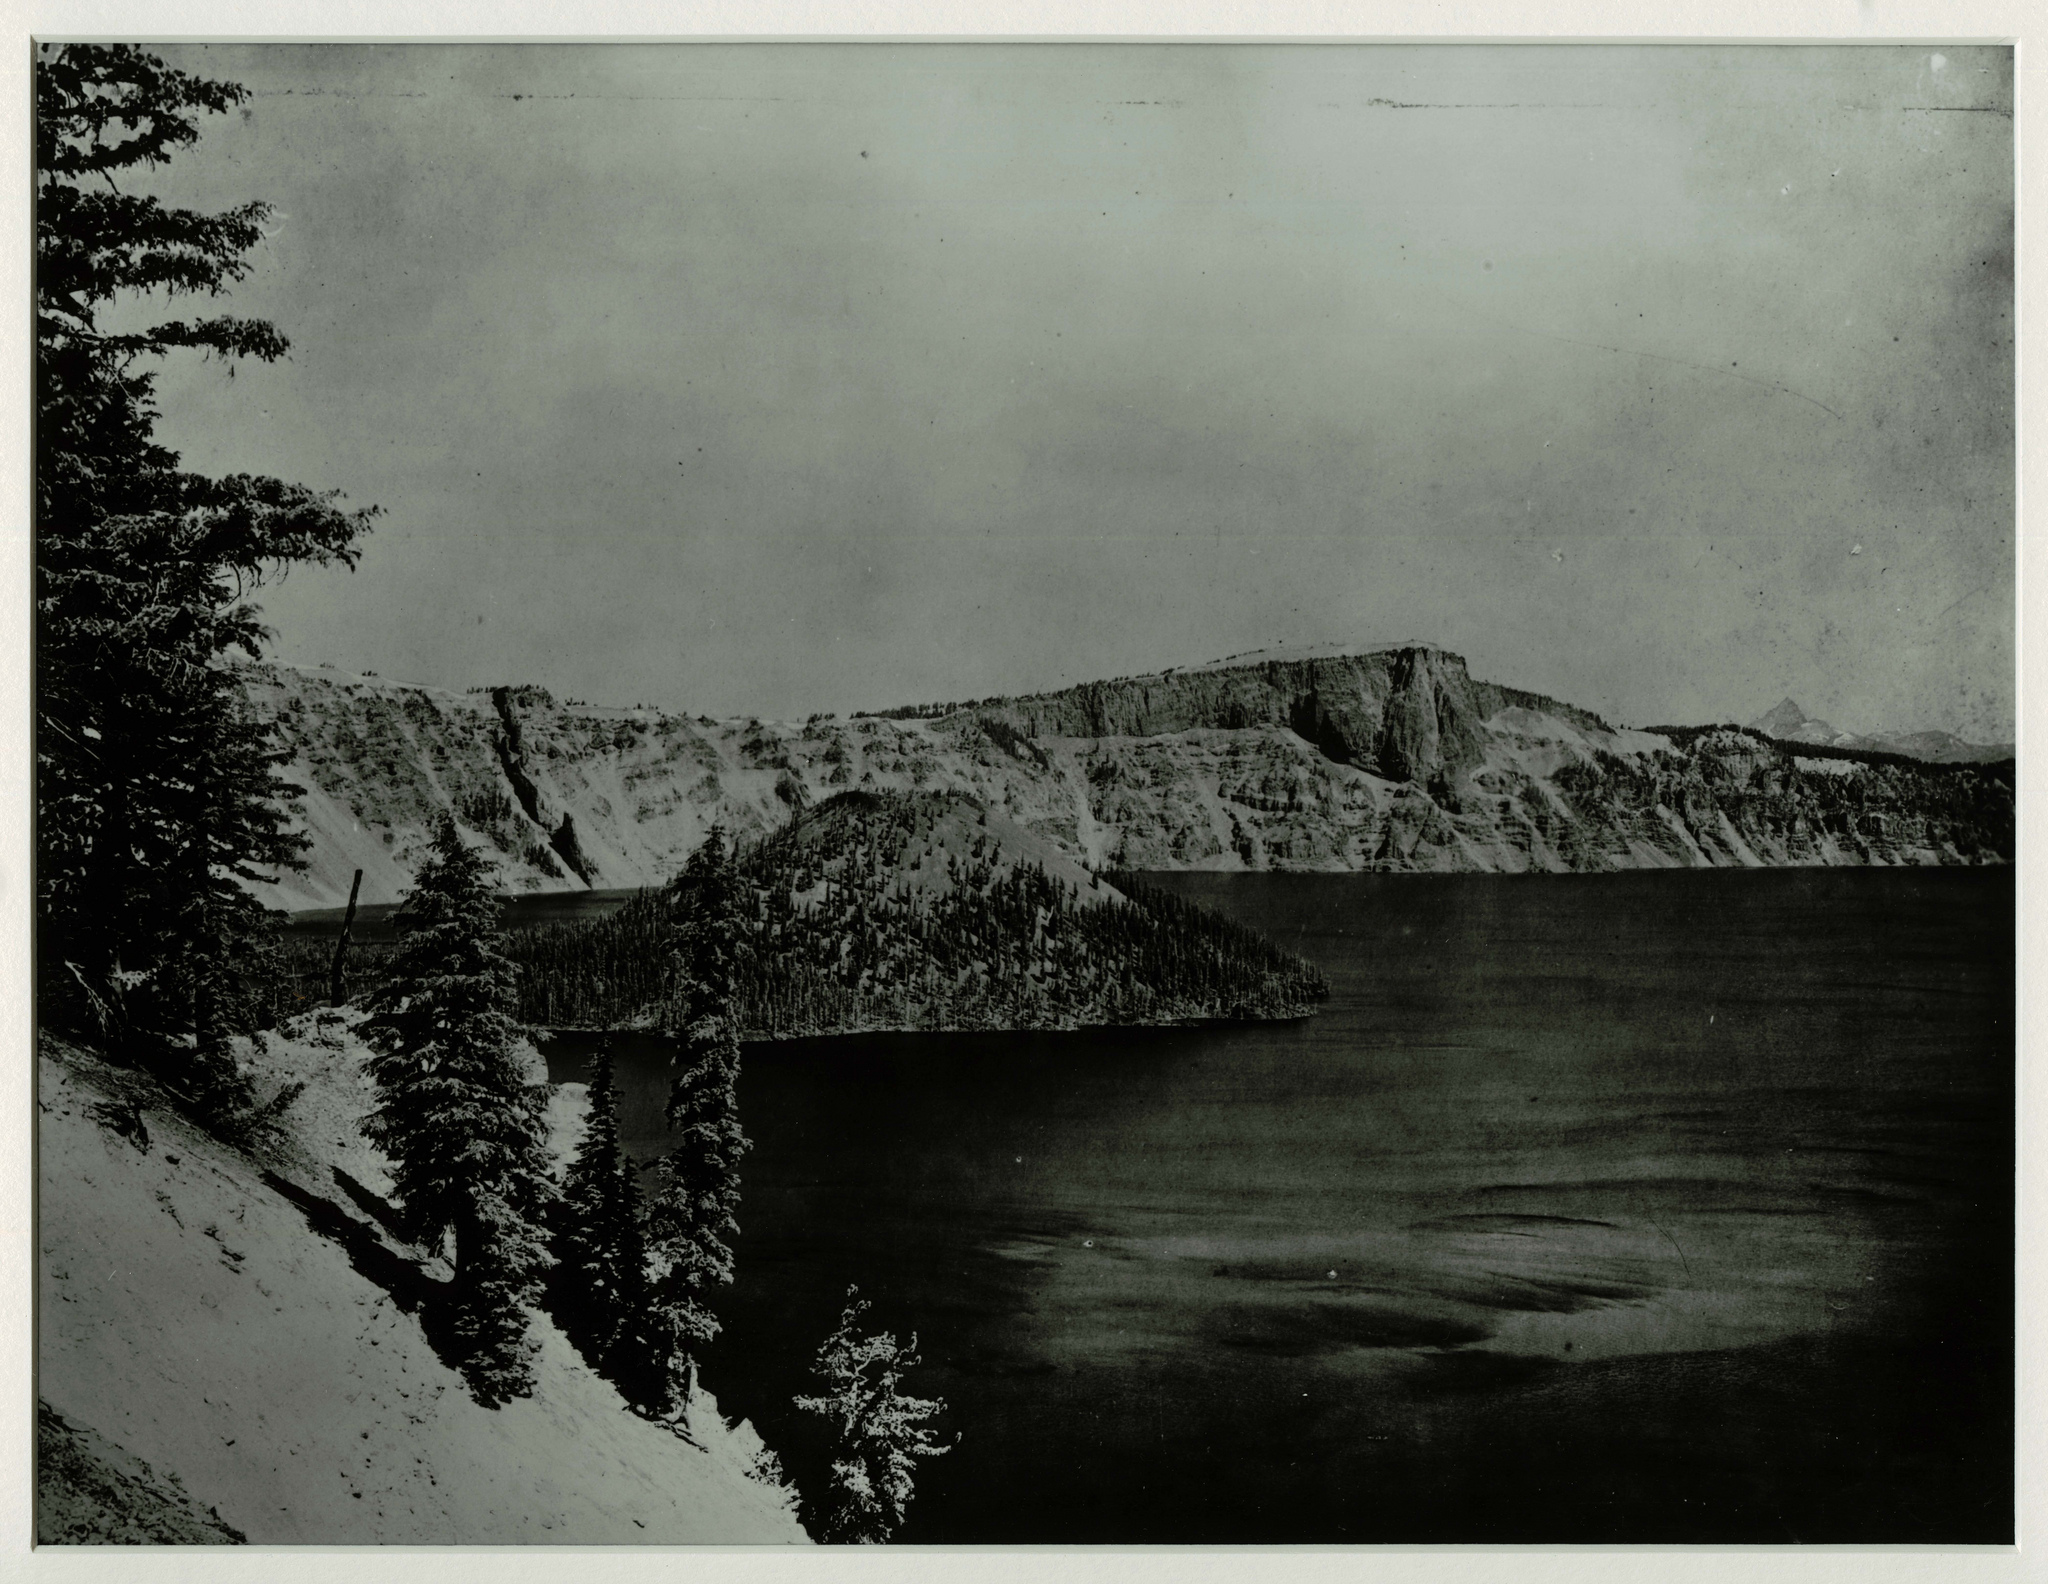 Victor Rock and Crate Lake from Rim Village. Photographed by J.S. Diller in the 1890s or 1901 during the USGS survey of the Crater Lake area. Credit: Courtesy CRLA Museum & Archive Collections